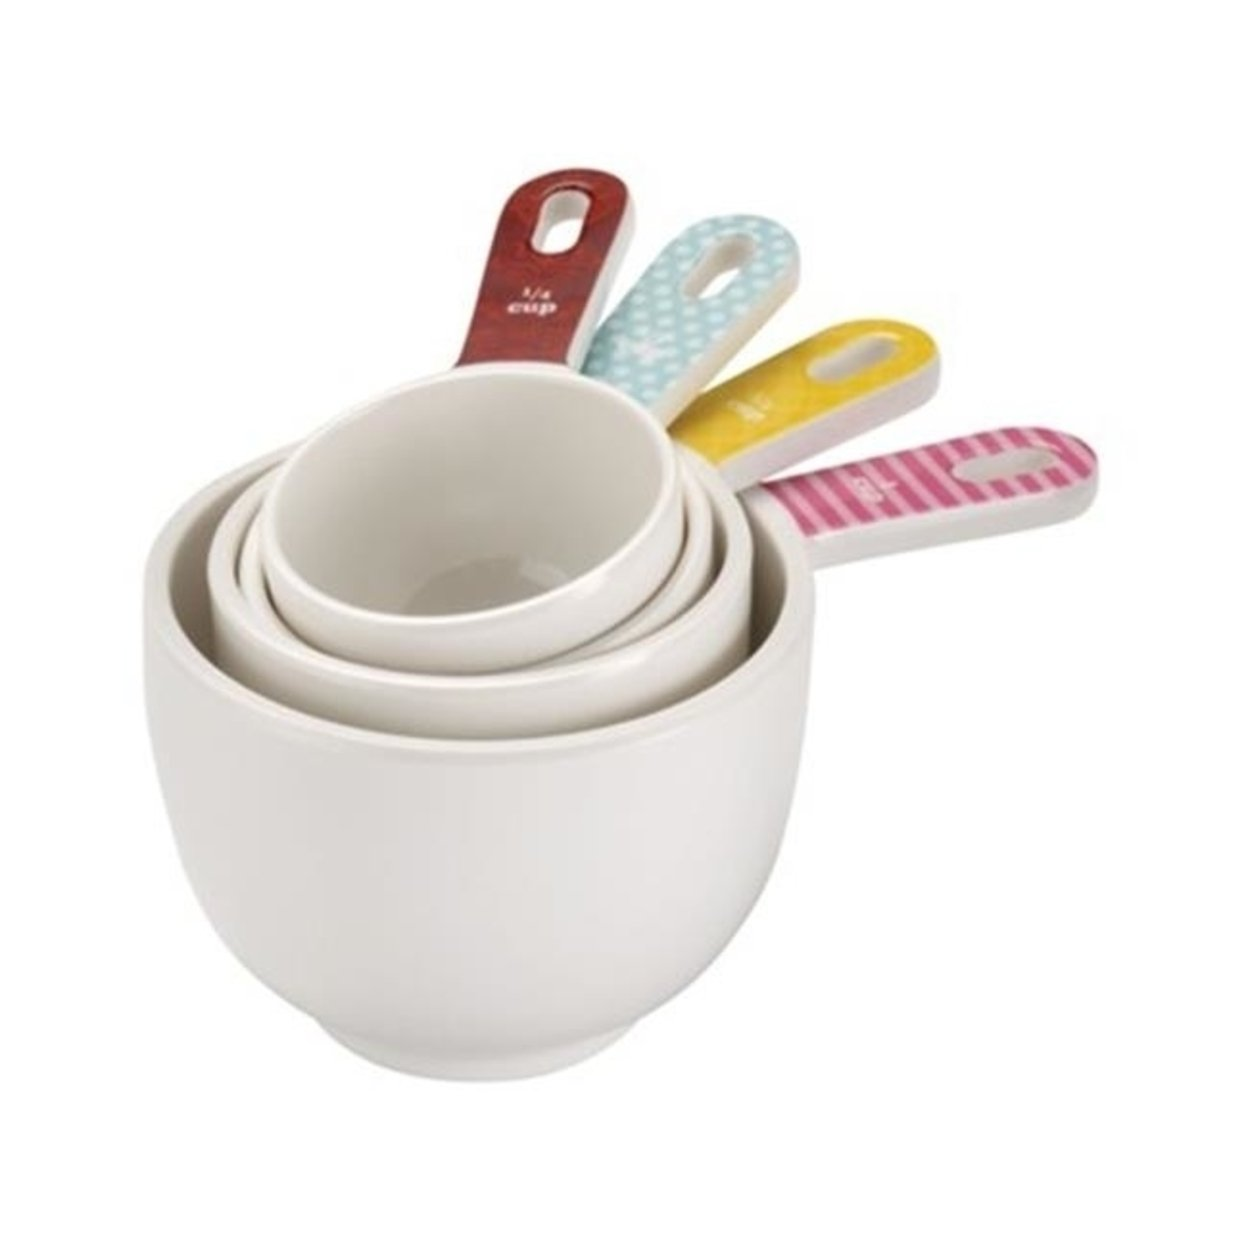 Cake Boss 59587 Countertop Accessories 4-Piece Melamine Measuring Cup Set, Basic Pattern 5a3c4e7c2a00e457775ee013